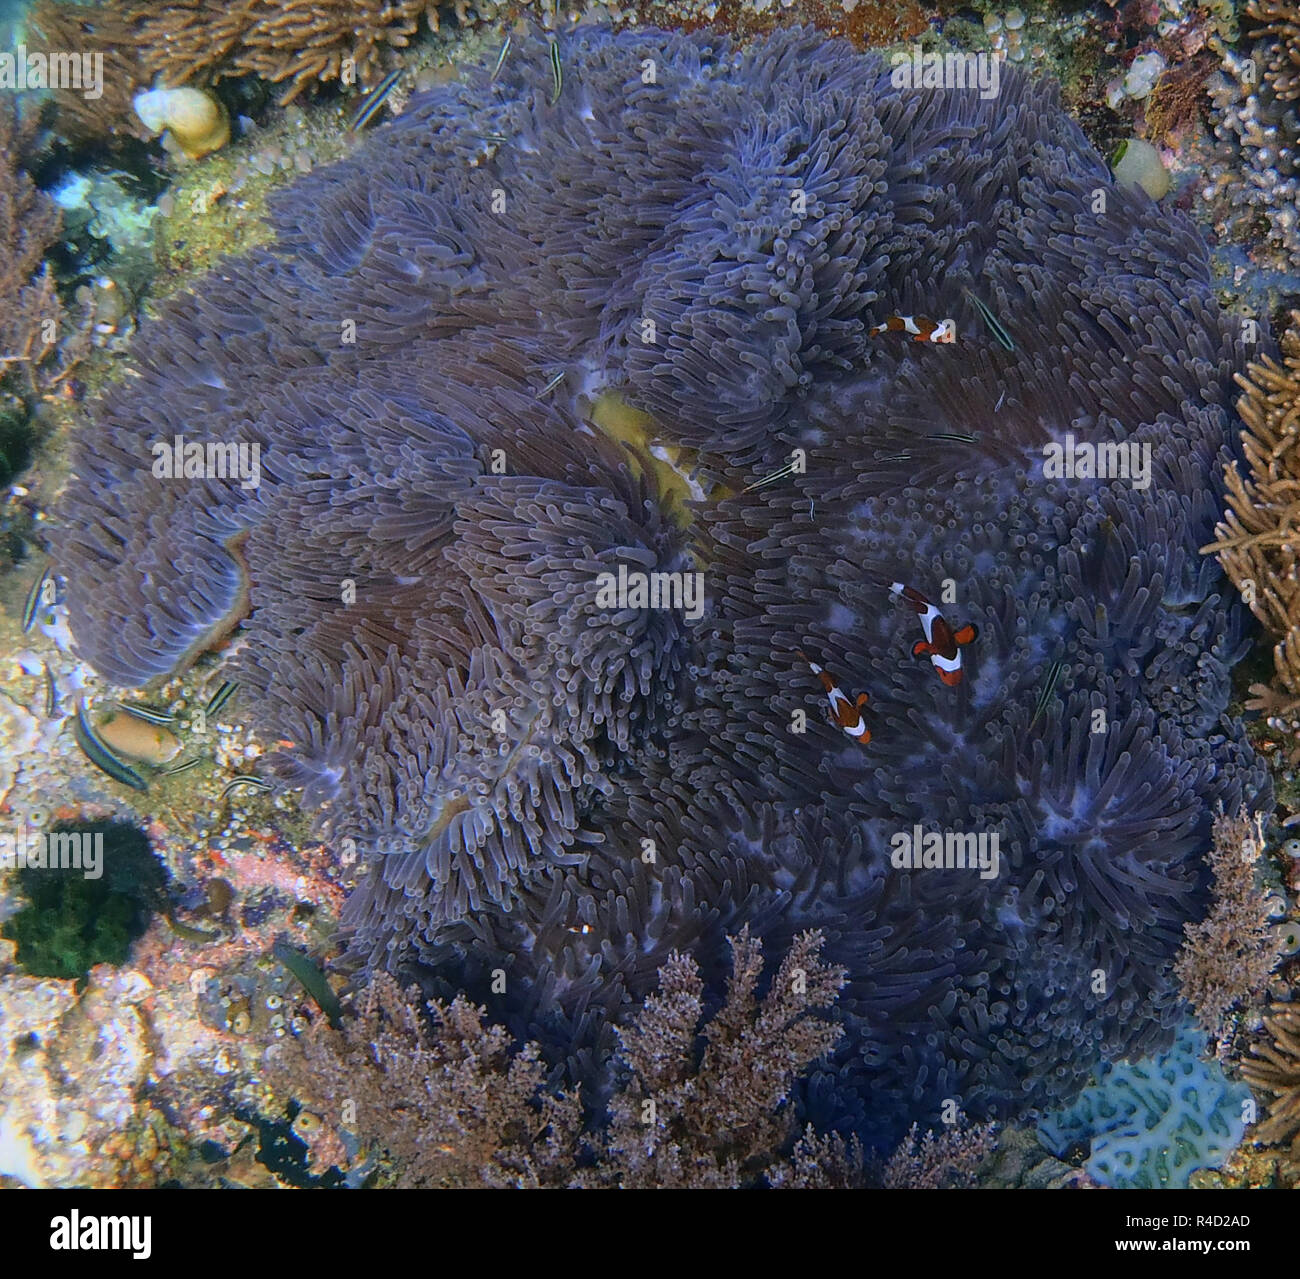 clownfish in anemone - Stock Image